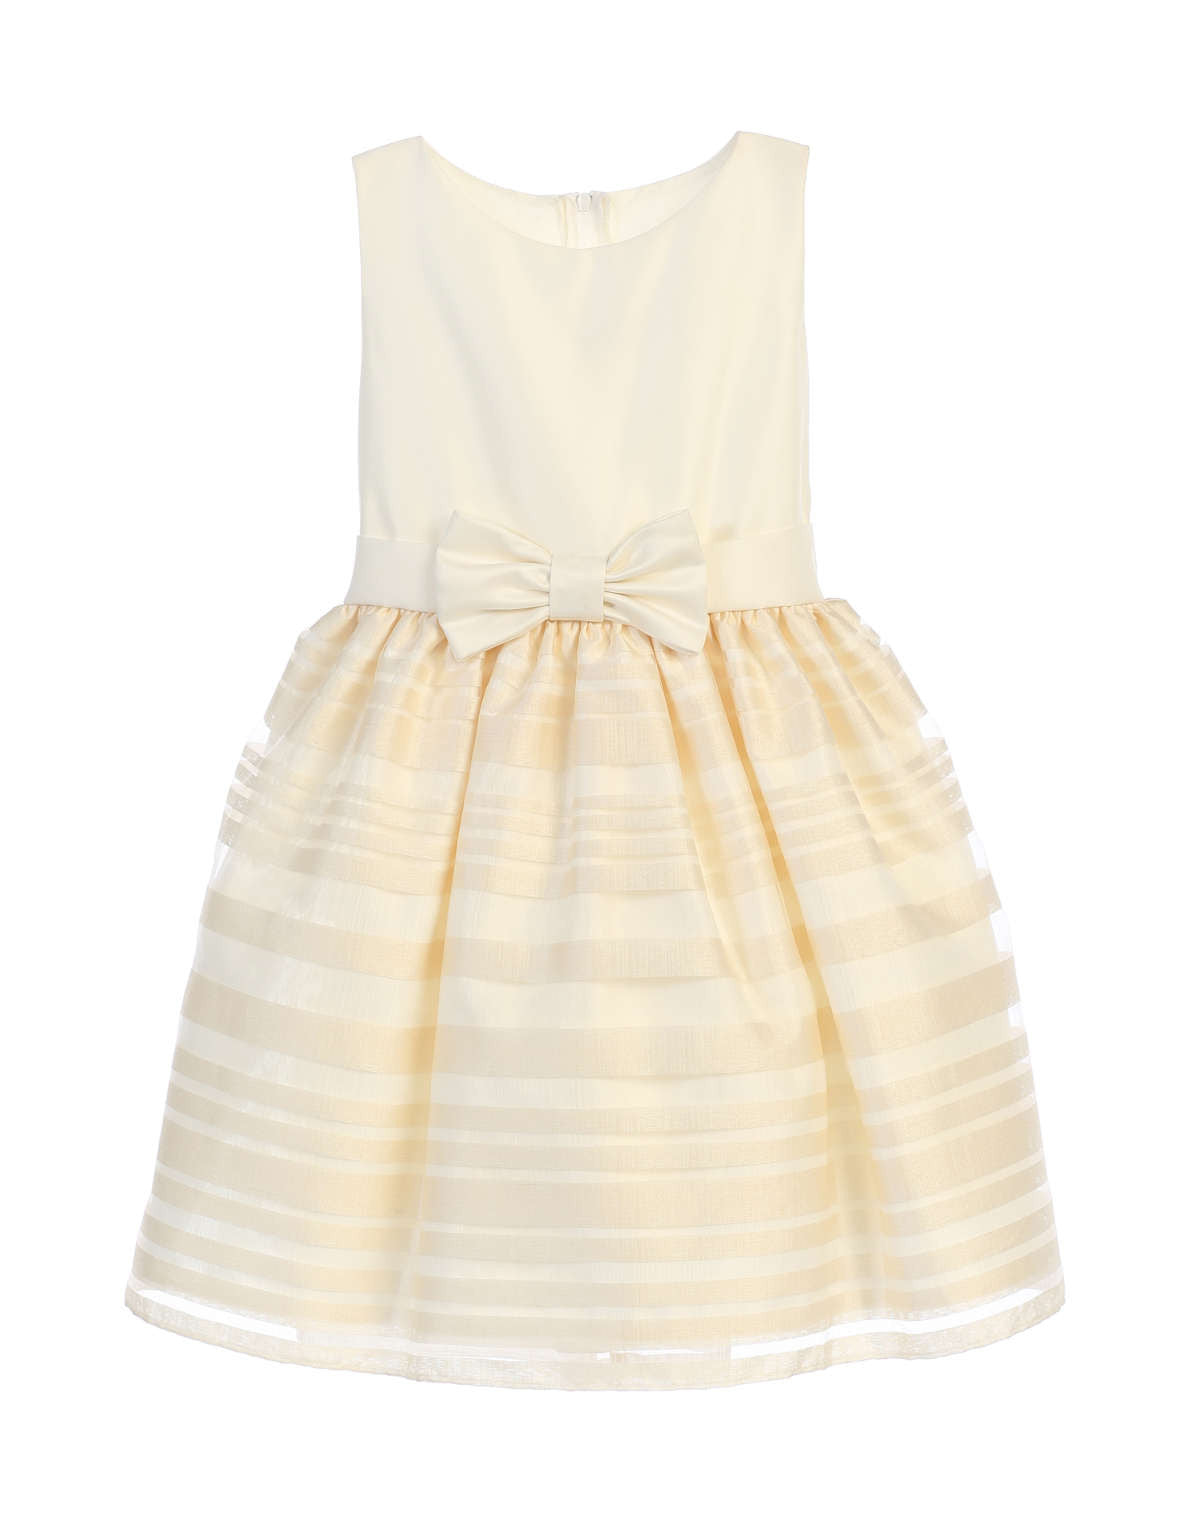 Sweet Kids Satin and Striped Organza Skirt Dress - Ivory, SK677